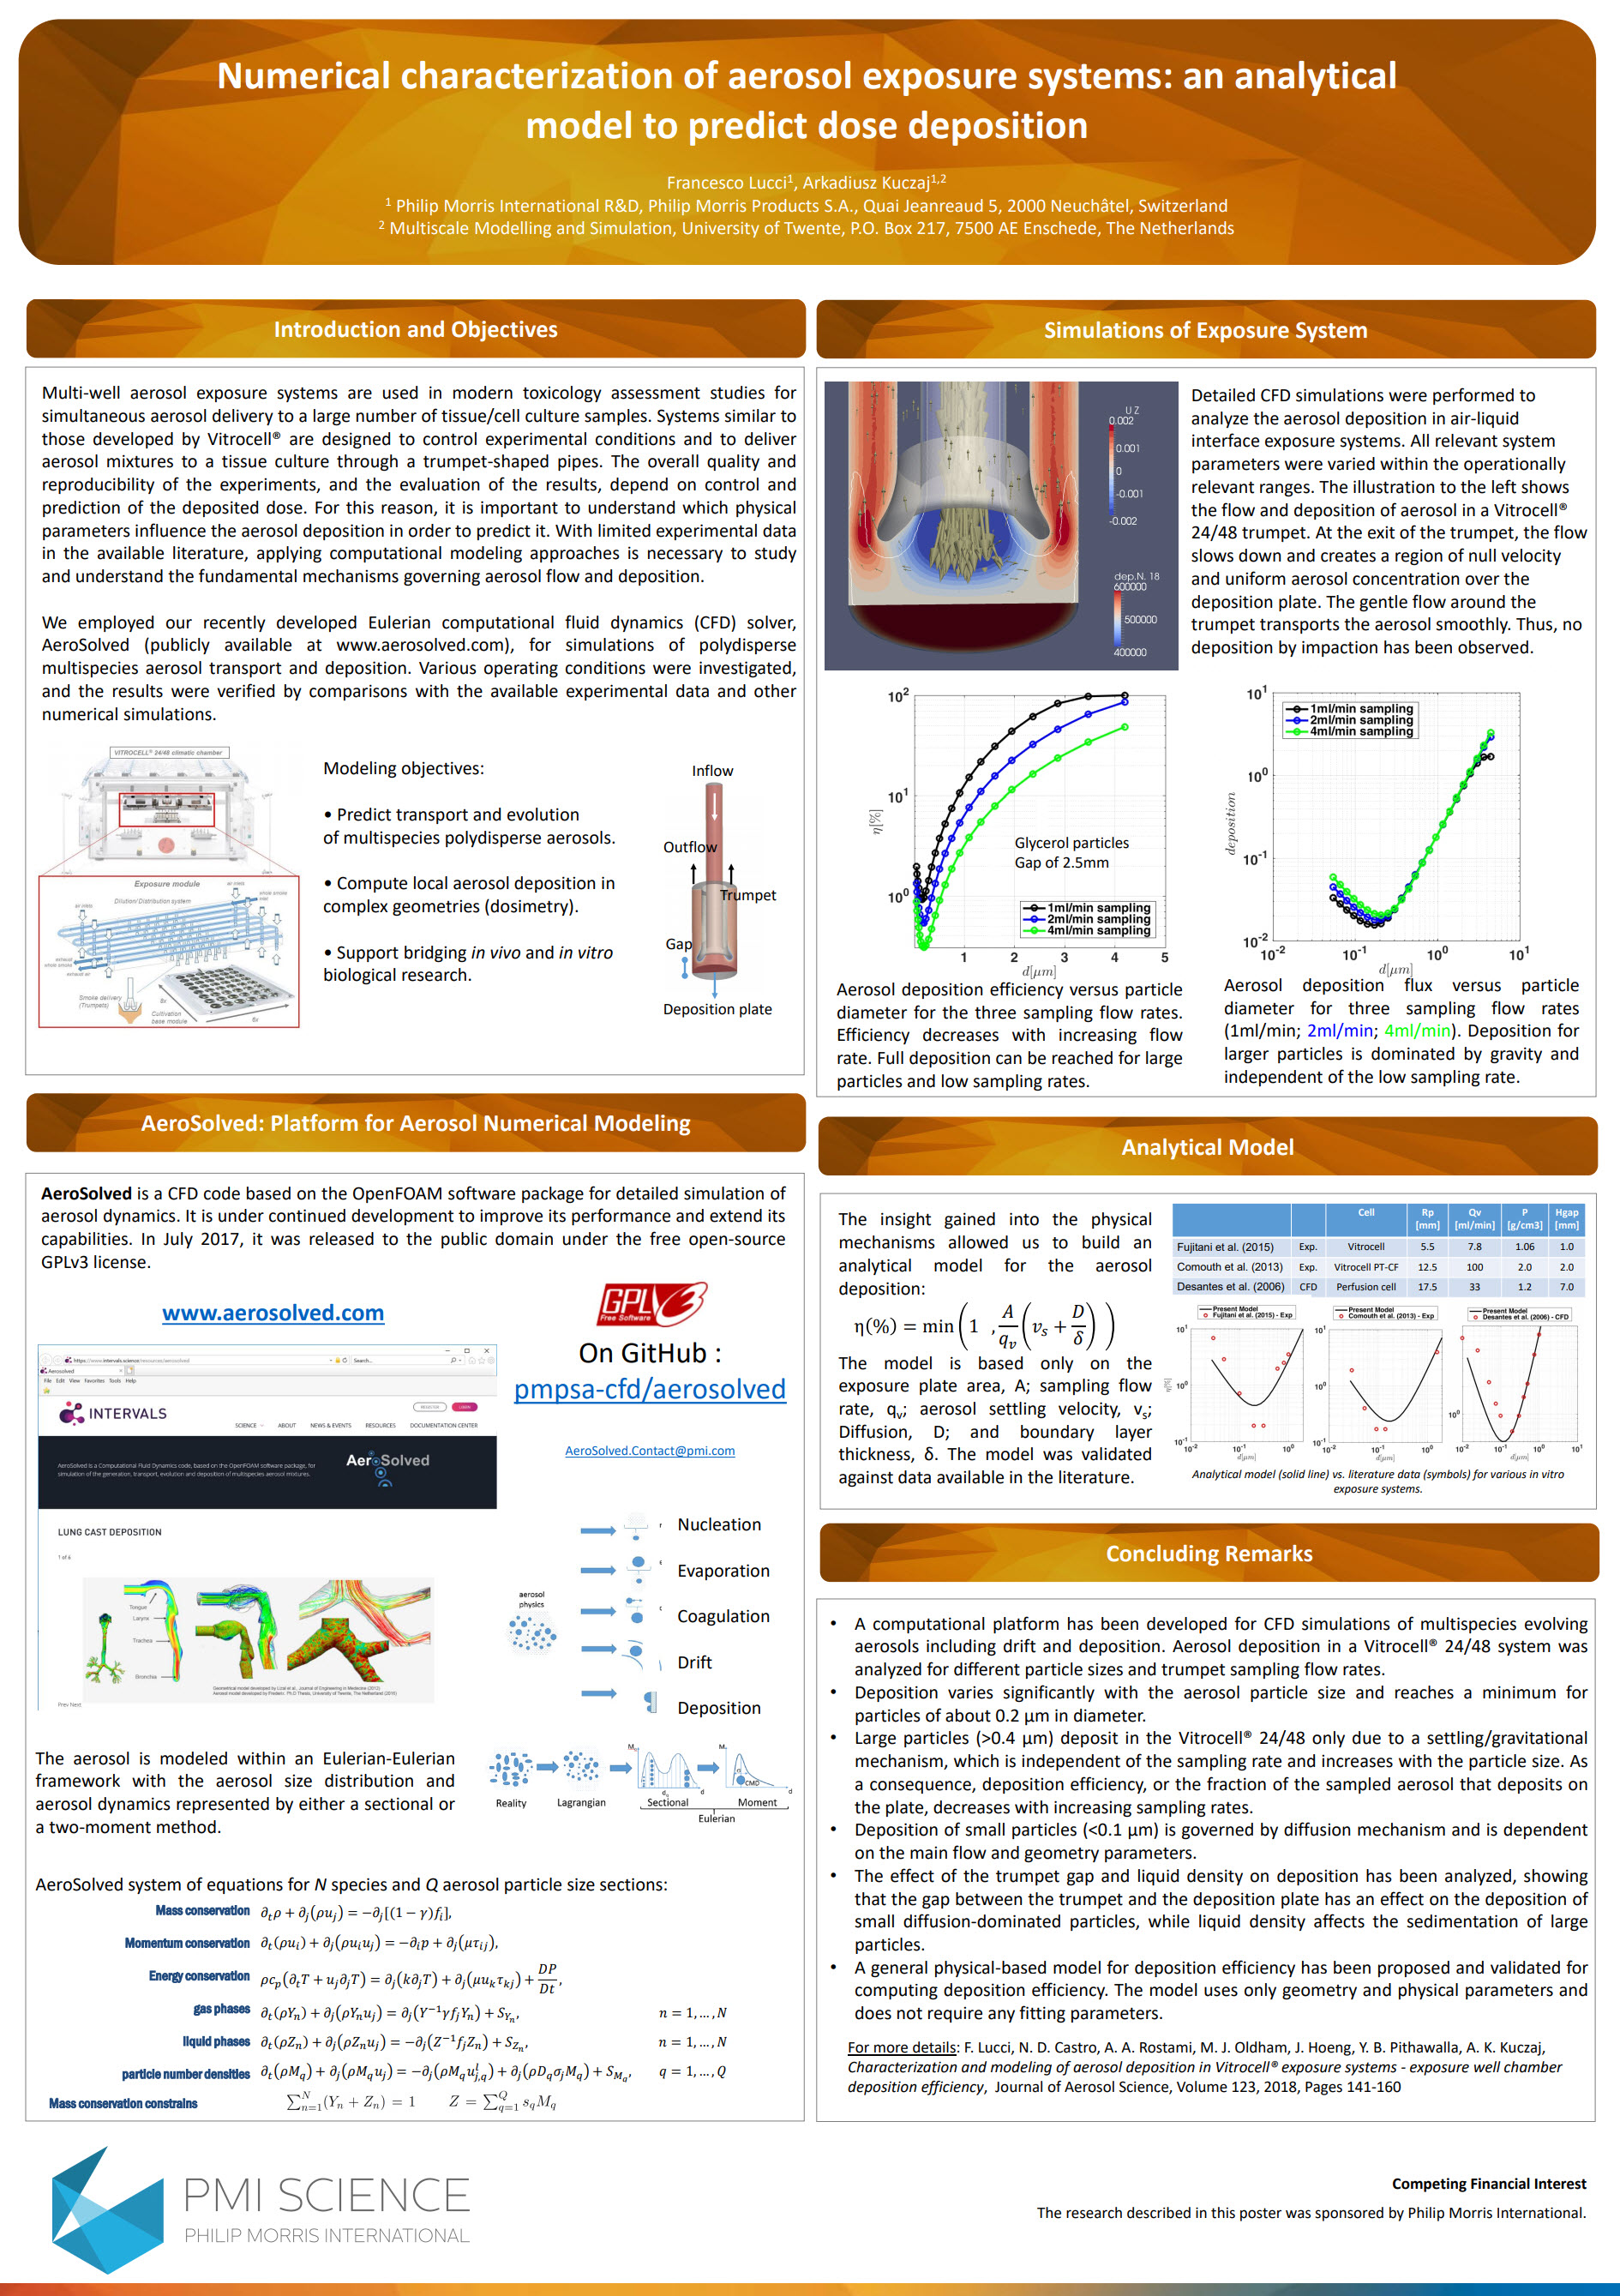 Poster_F. Lucci Numerical characterization of aerosol exposure systems_an analytical model to predict dose deposition